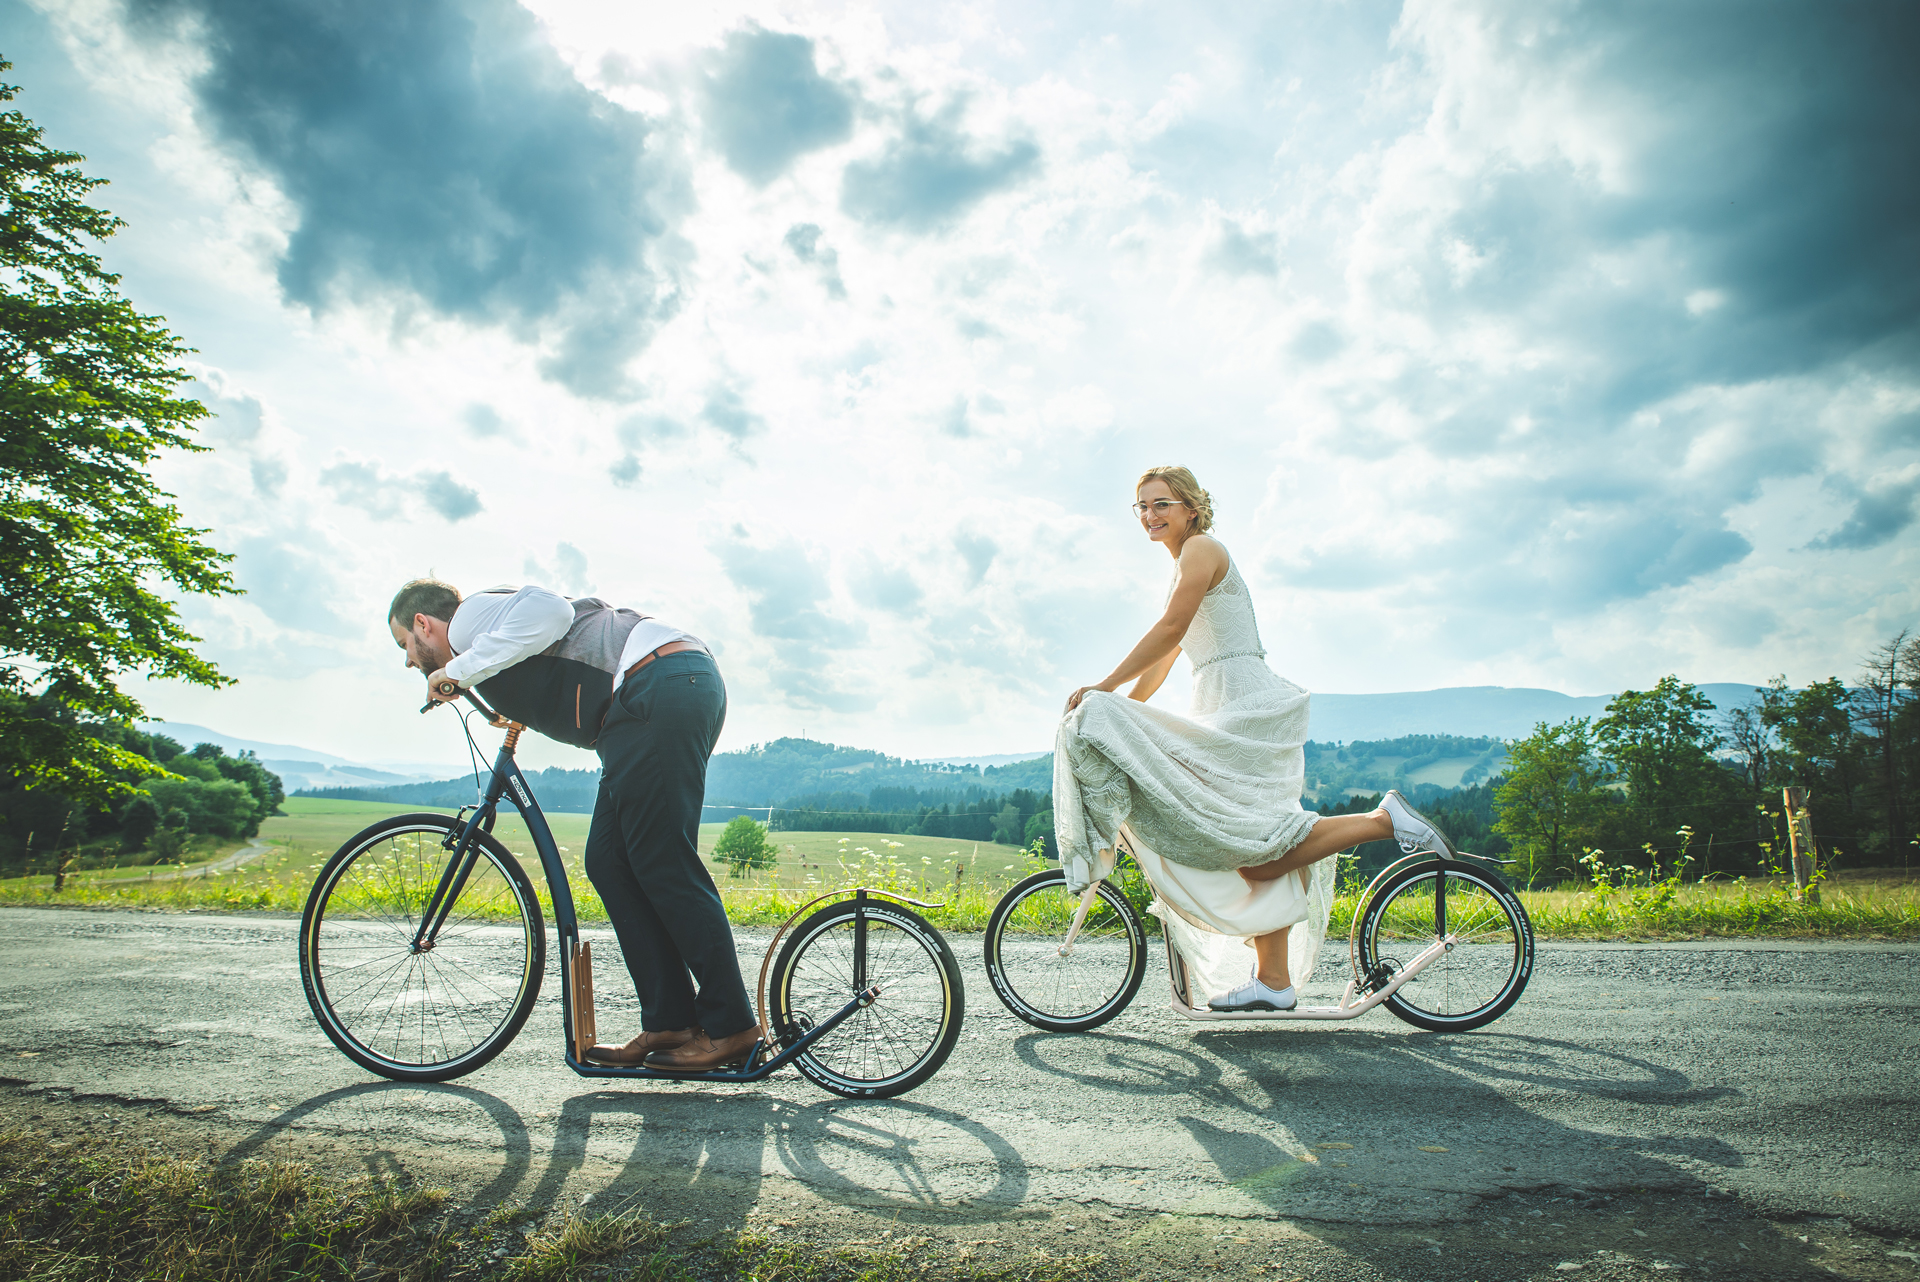 Newlyweds Mr. and Mrs. Kostka on their footbikes